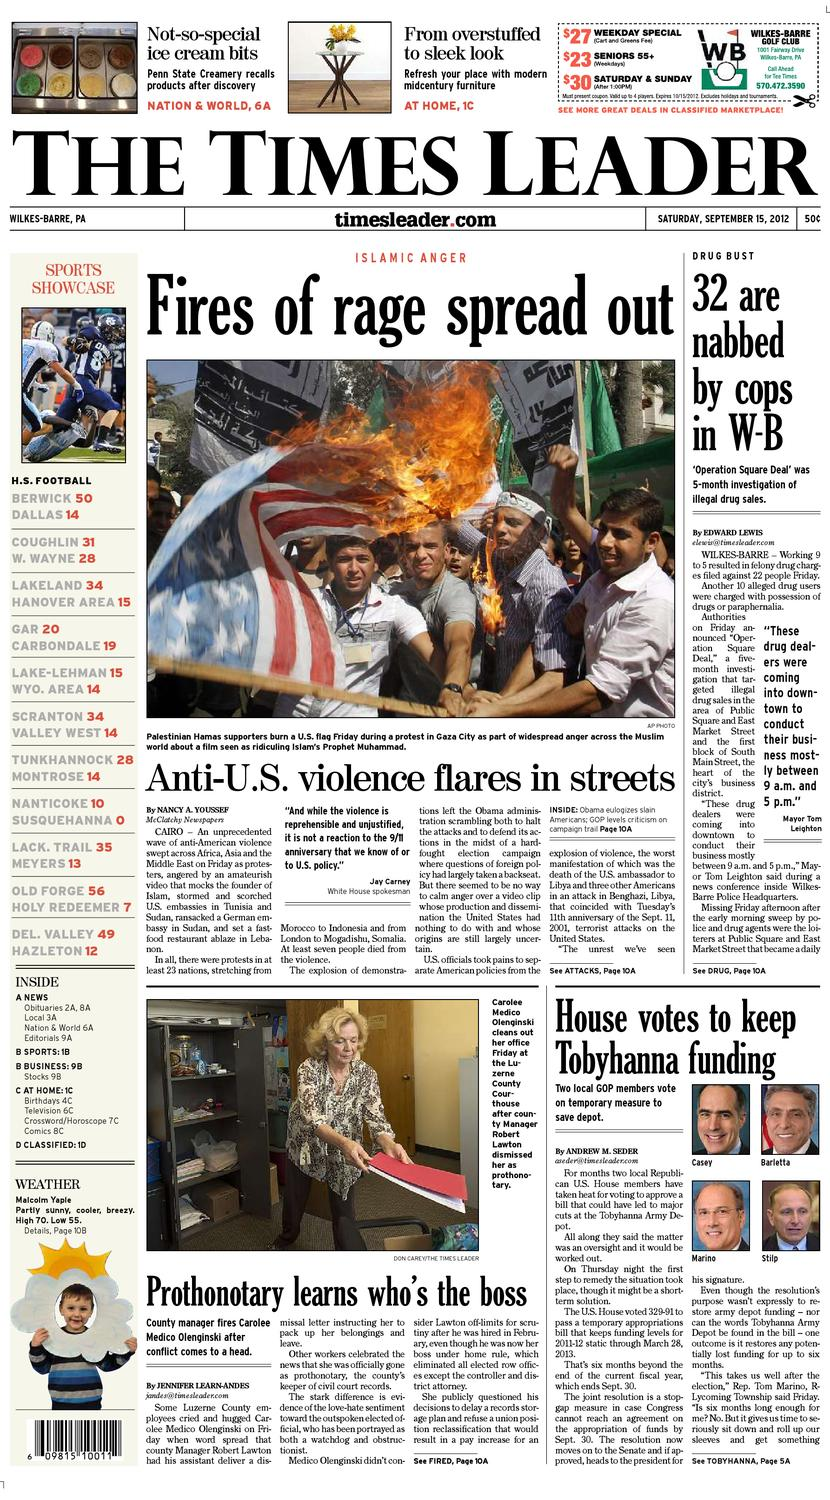 Times Leader 09-15-2012 by The Wilkes-Barre Publishing